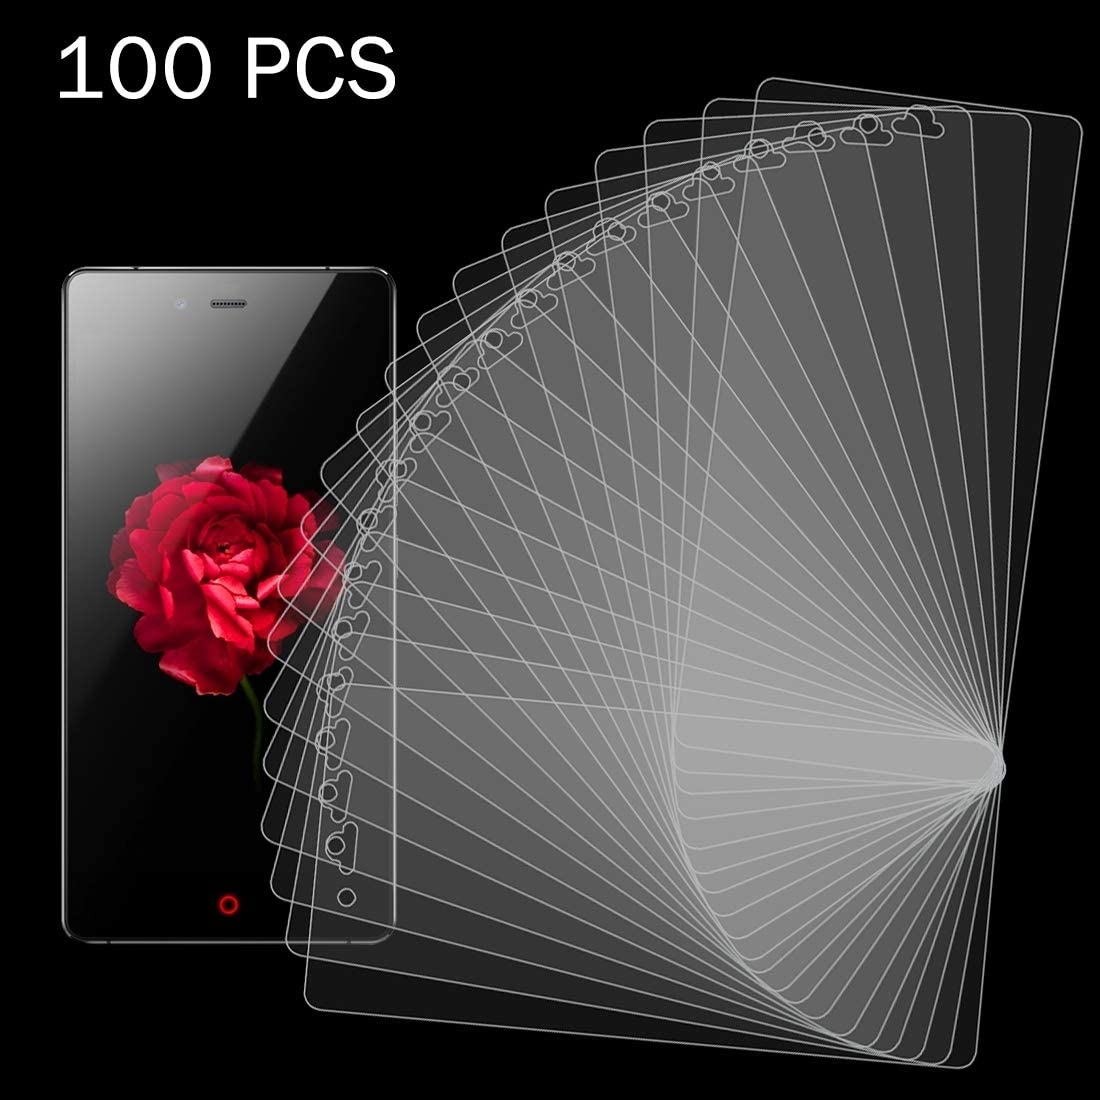 YINZHI Screen Protector Film 100 PCS 0.26mm 9H Surface Hardness 2.5D Explosion-Proof Tempered Glass Screen Film for ZTE Nubia Z9 Mini Clear